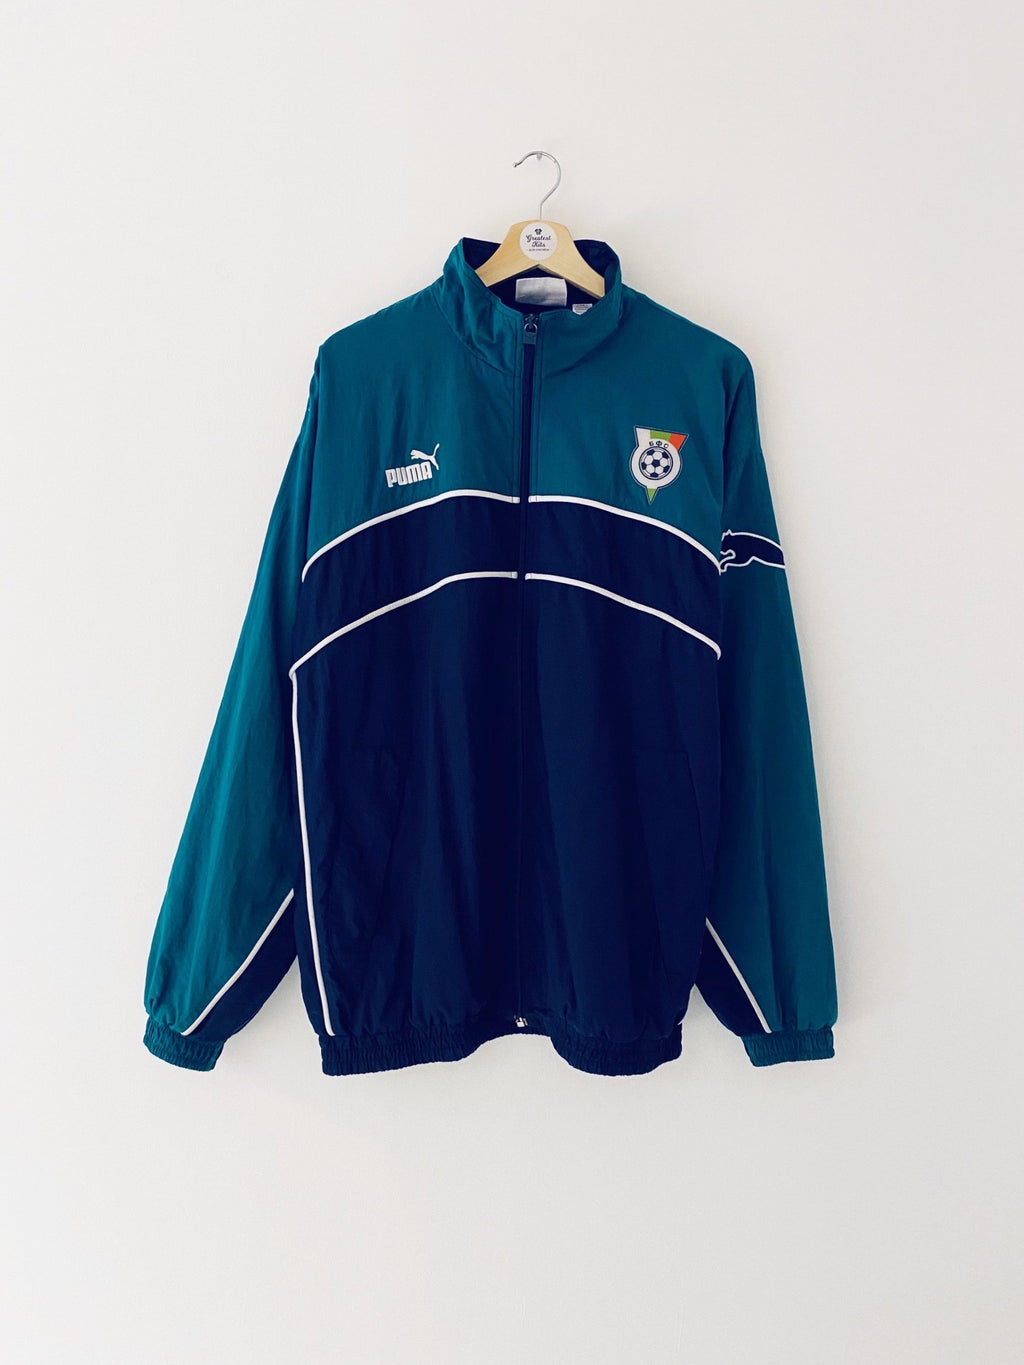 2000/02 Bulgaria Training Jacket (XL) 9/10